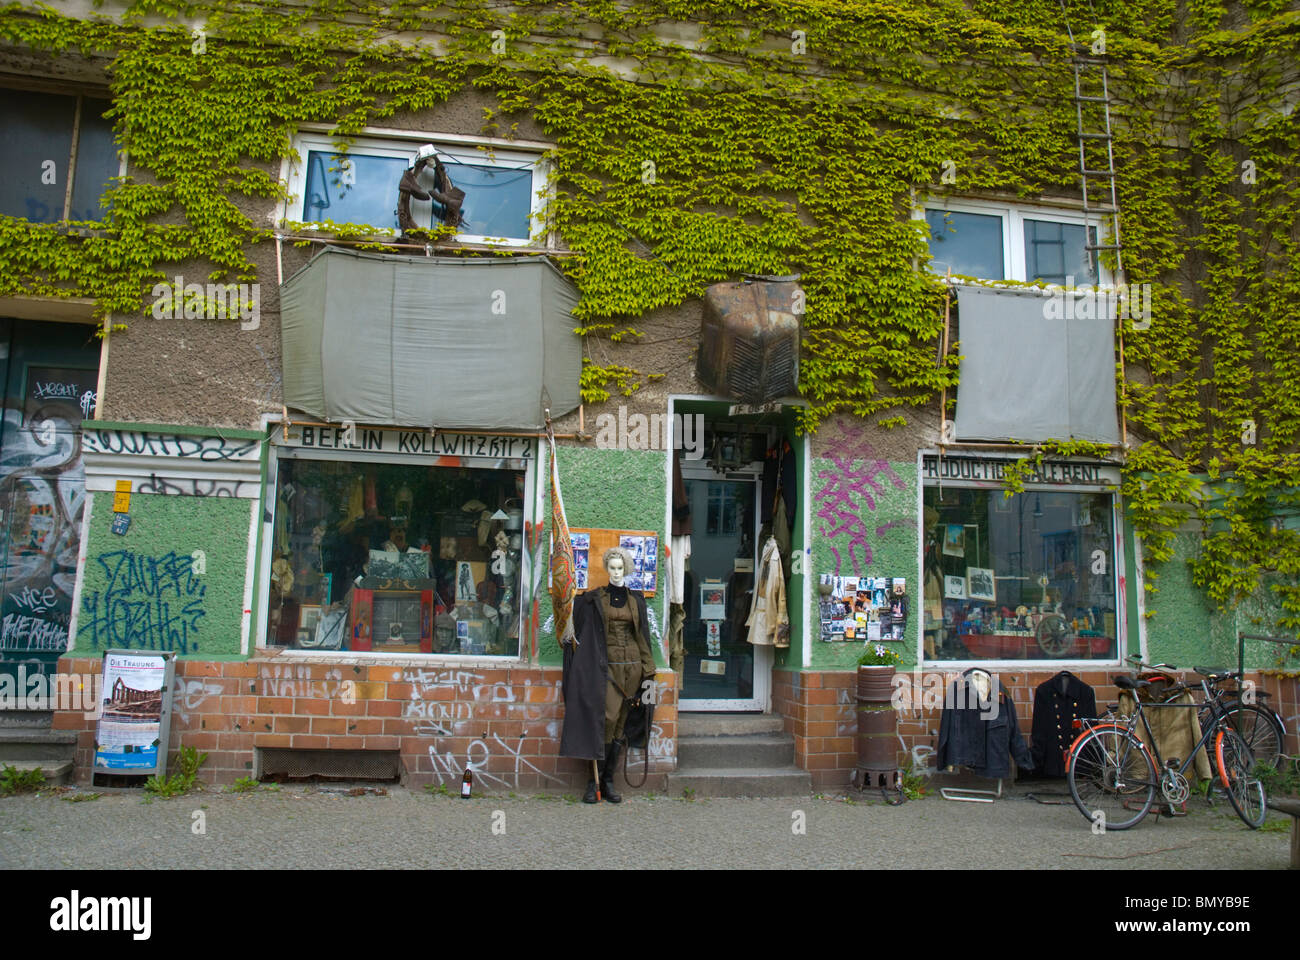 Costume rental and 2nd hand shop exterior Prenzlauer Berg east Berlin Germany Europe - Stock Image